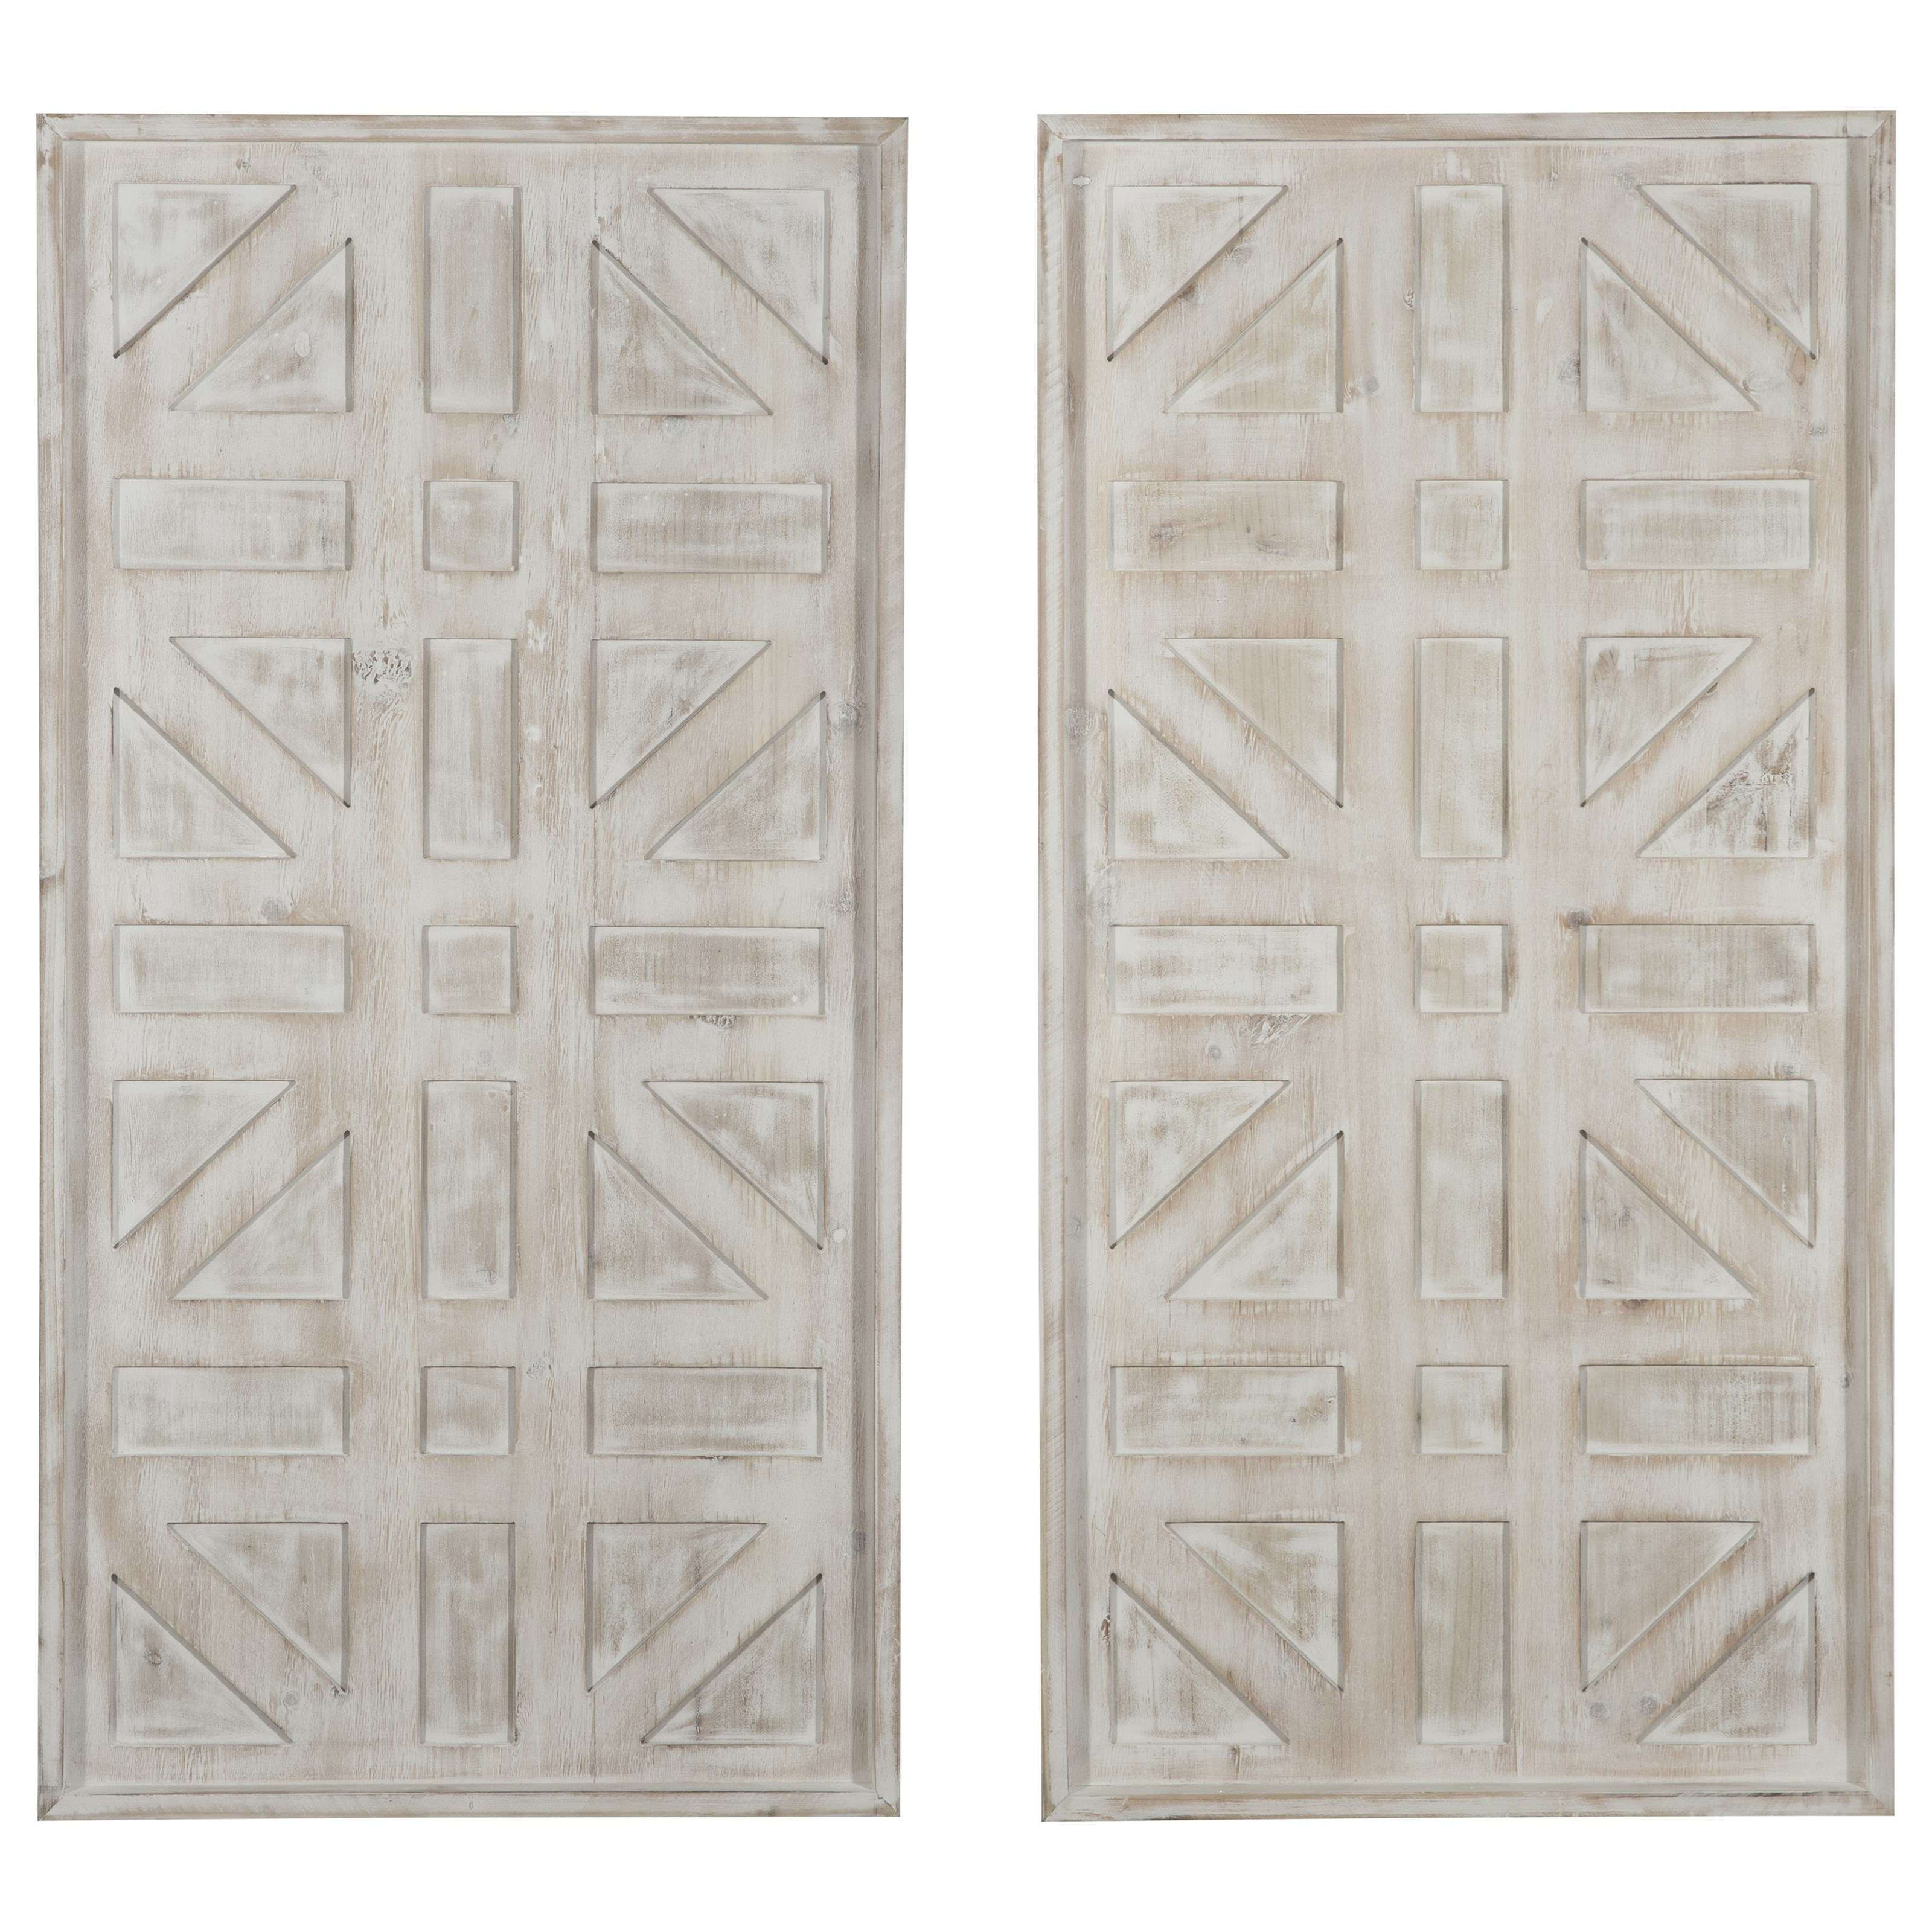 Wall Art Dubem Antique White Wall Decor Set by Signature Design by Ashley at Lapeer Furniture & Mattress Center